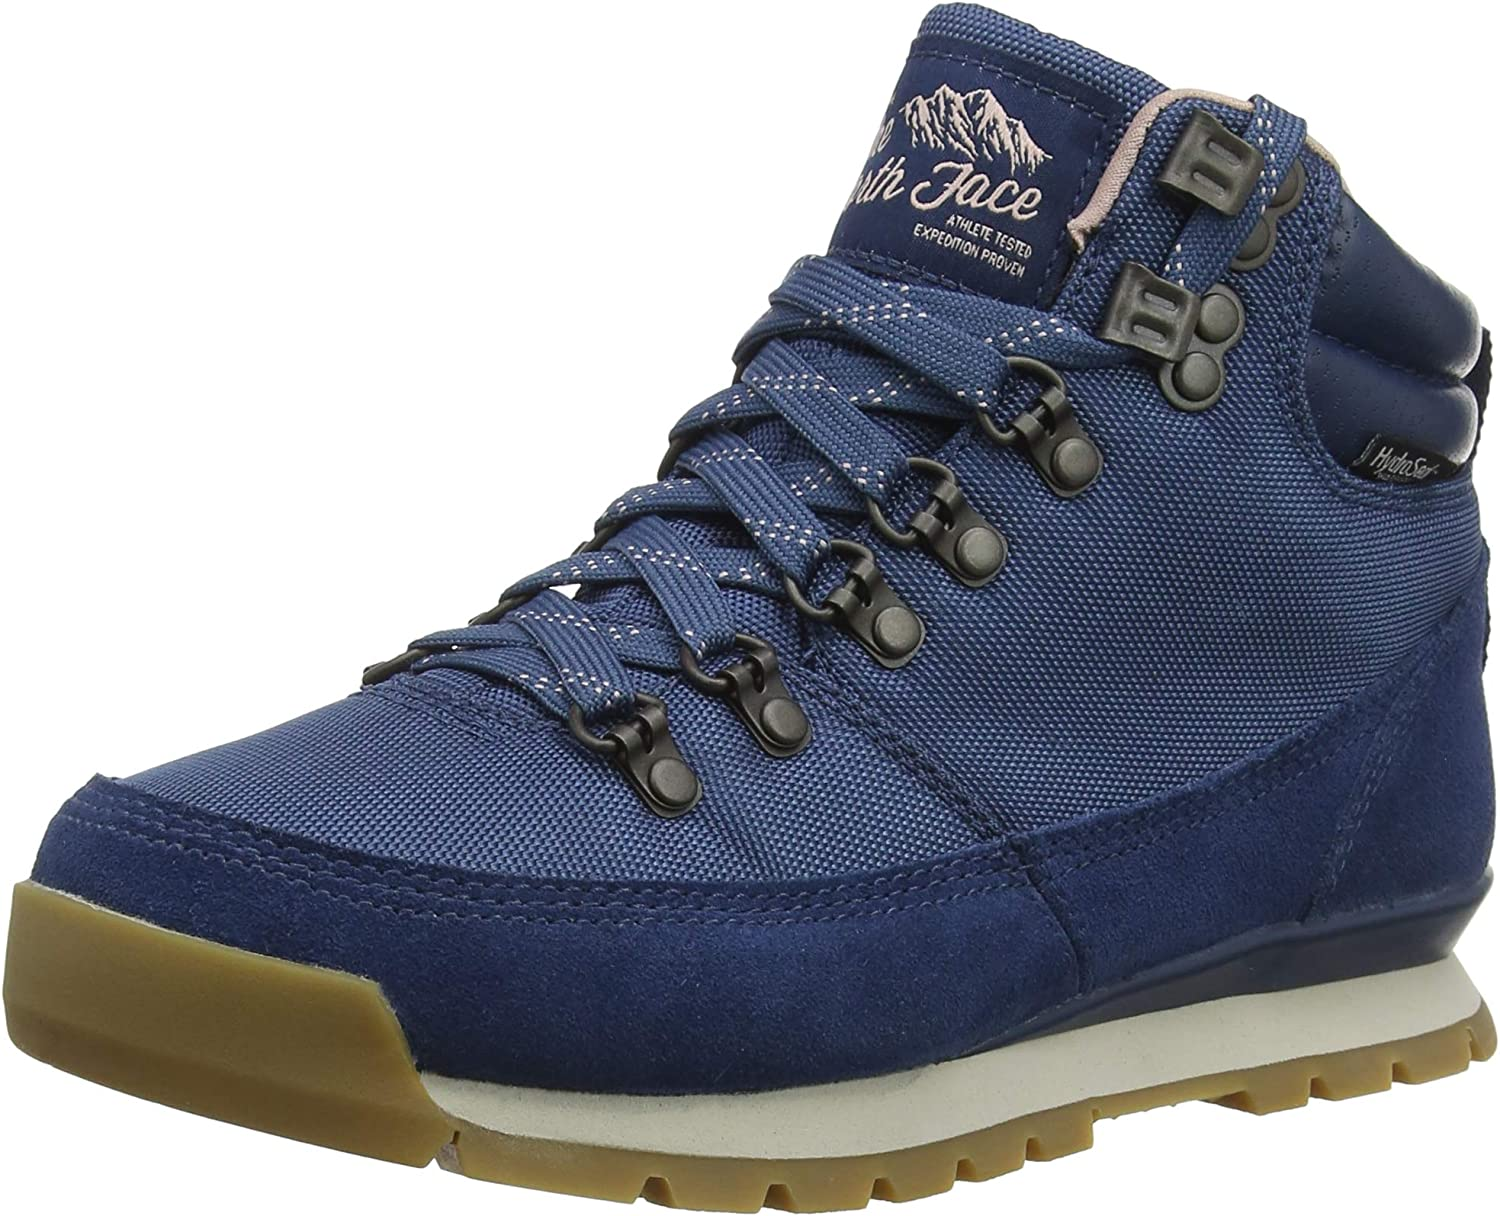 THE NORTH FACE Damen Back-to-Berkeley rotux Trekking- & Wanderstiefel    900179